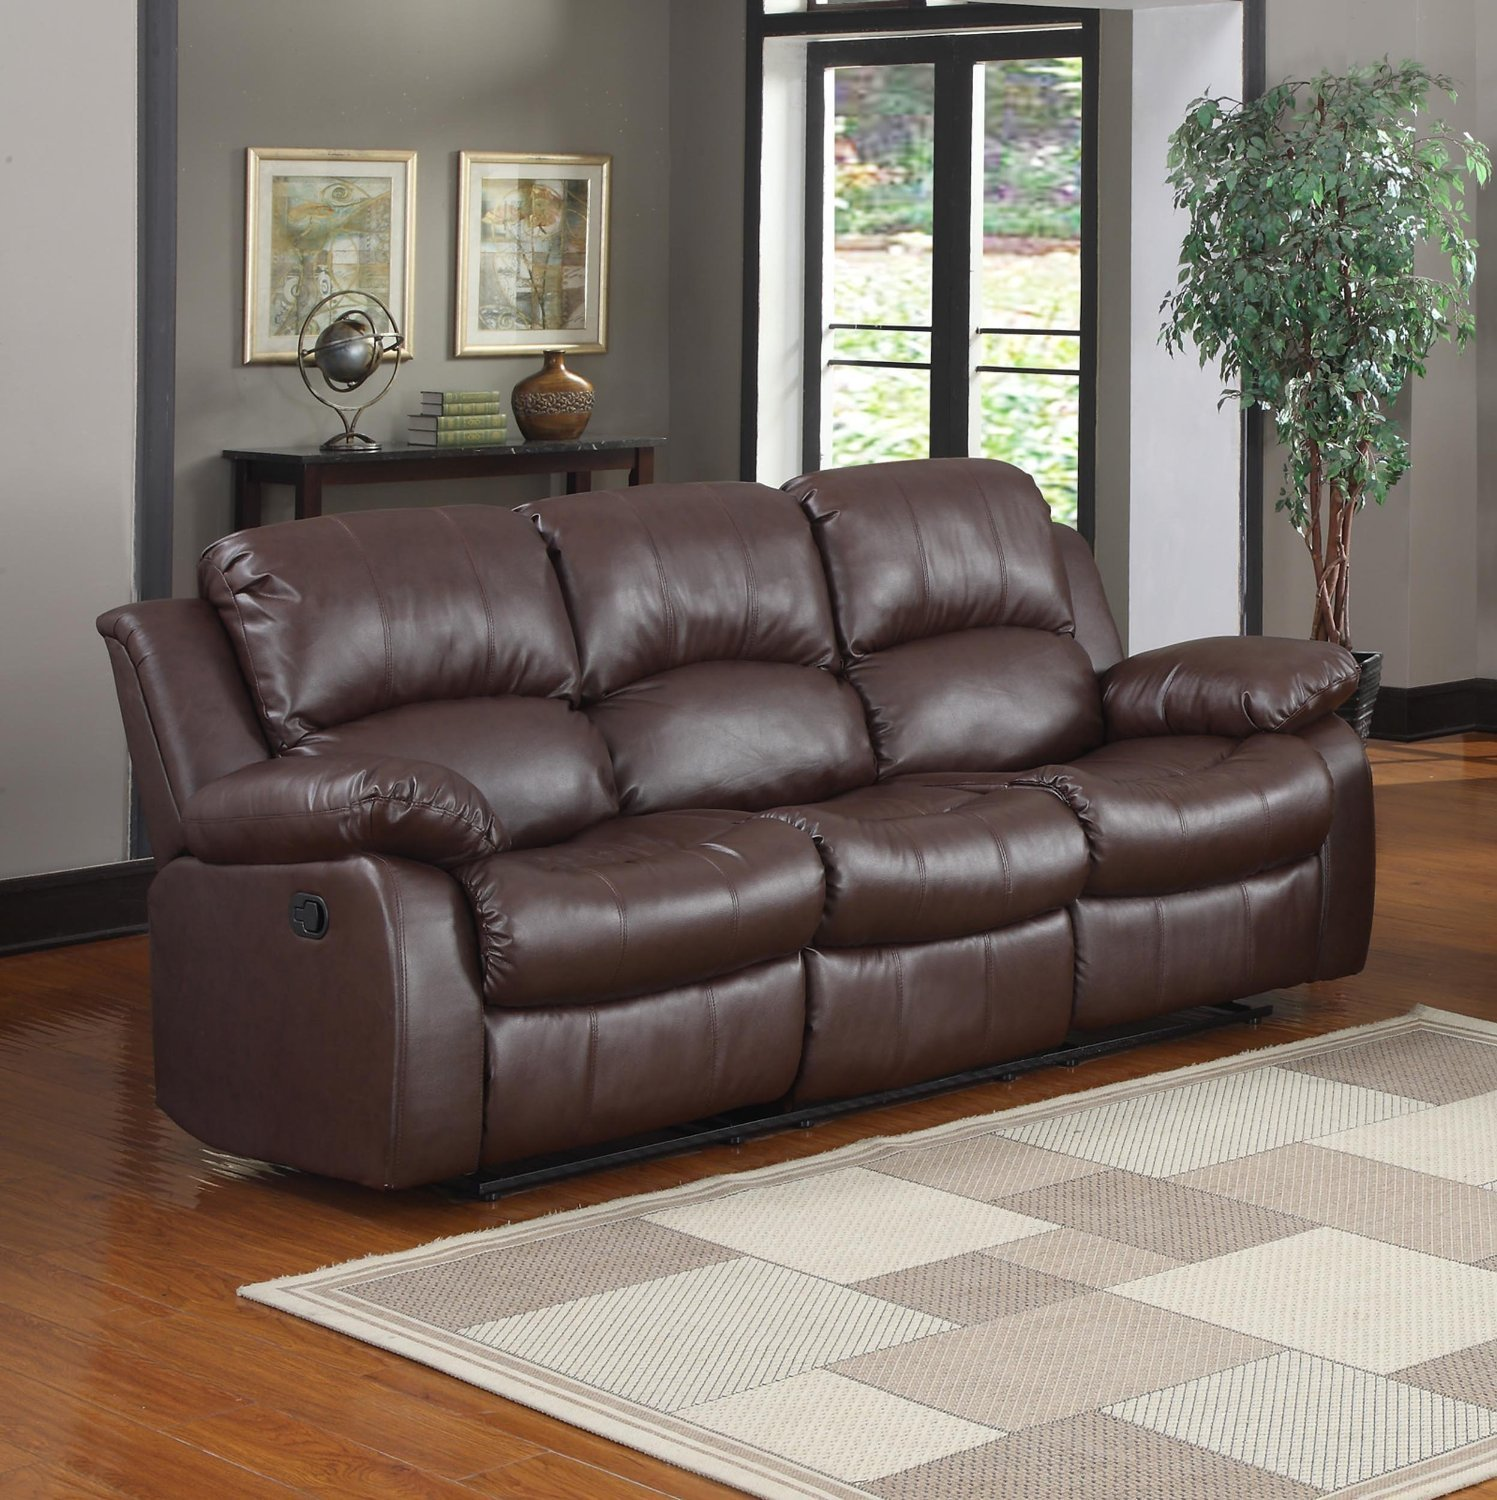 Leather Reclining Sofa for Added Comfort in Living Room